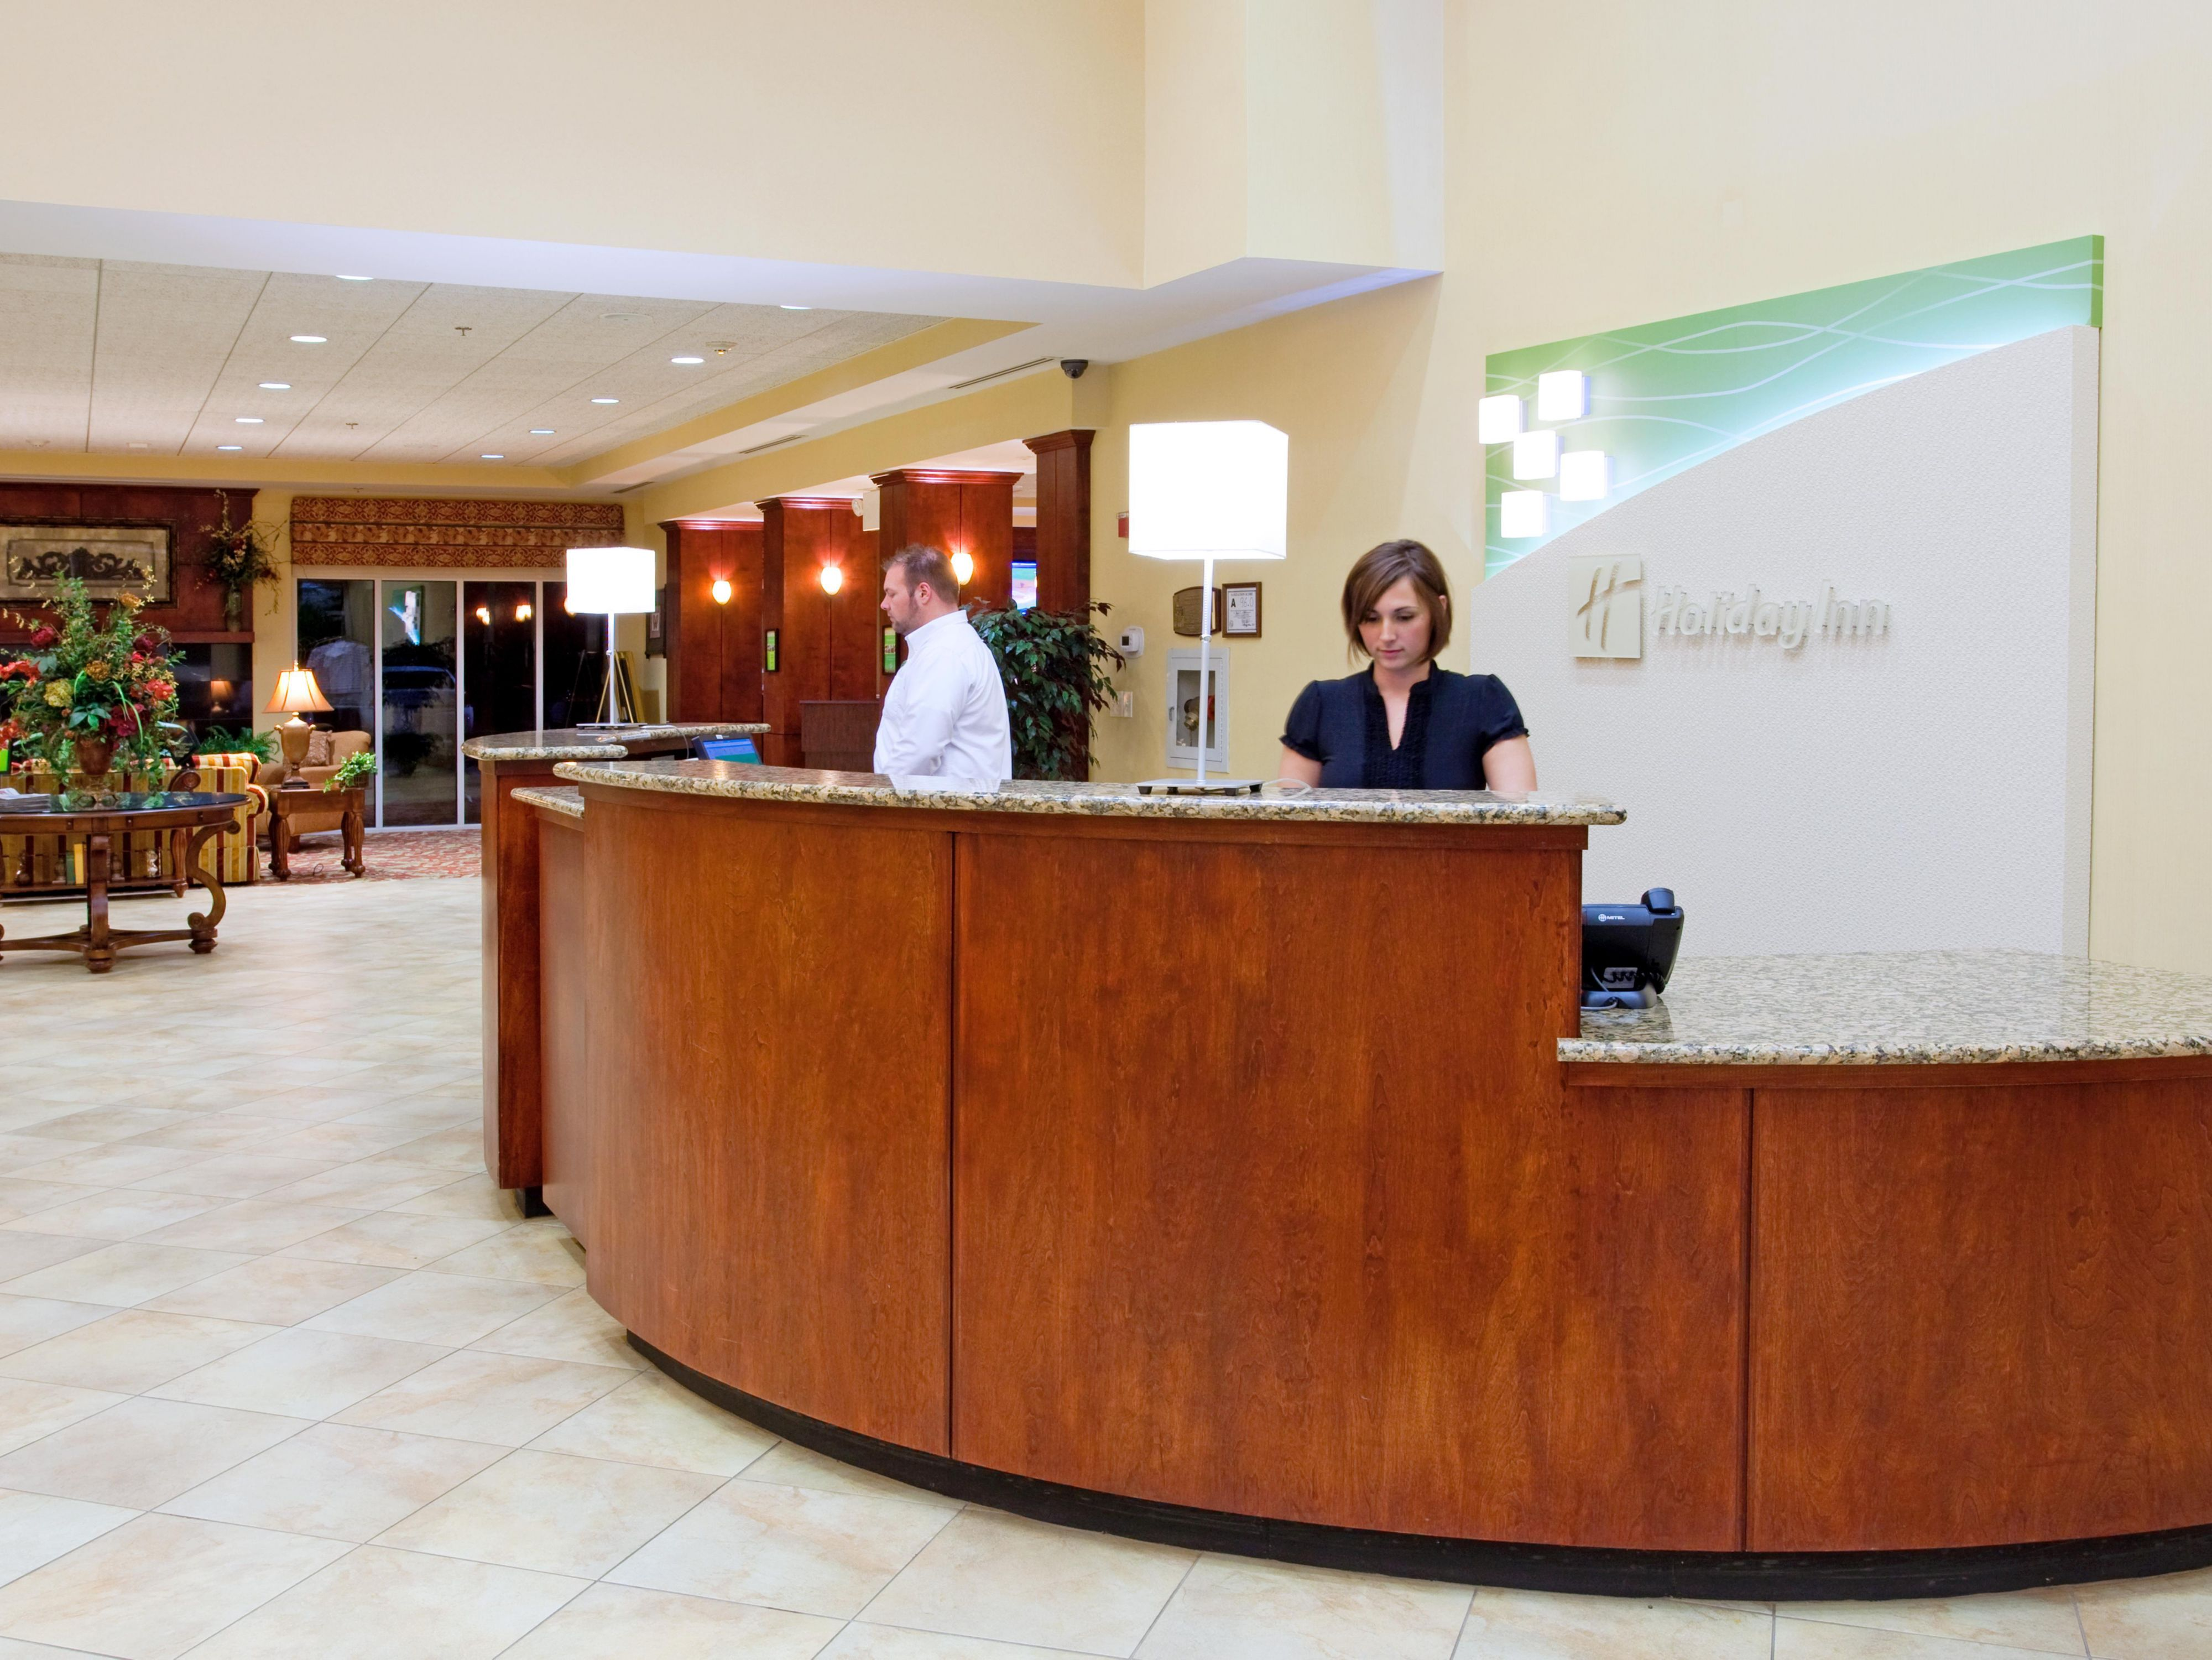 Our friendly and well-trained staff is ready to assist you!